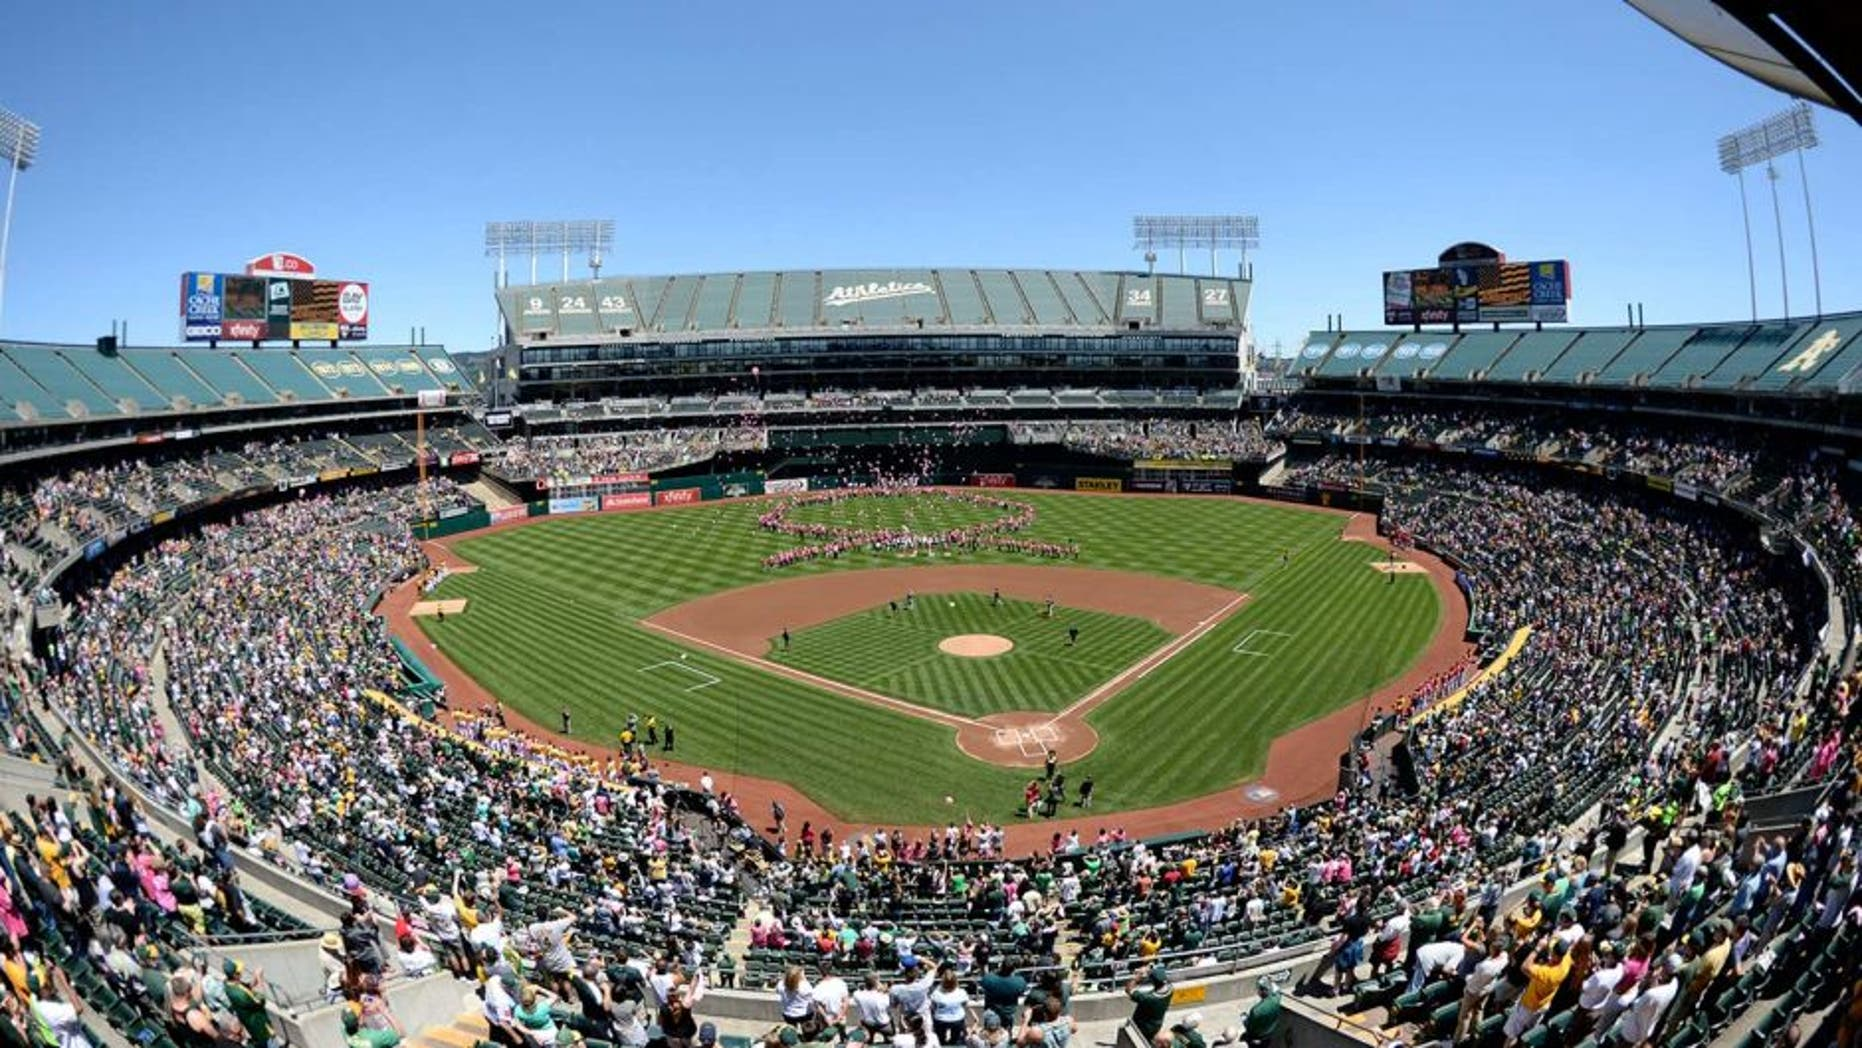 May 11, 2014; Oakland, CA, USA; General view of O.co Coliseum with breast cancer awareness supporters on the field letting go pink balloons before the game between the Oakland Athletics and the Washington Nationals. Mandatory Credit: Kyle Terada-USA TODAY Sports